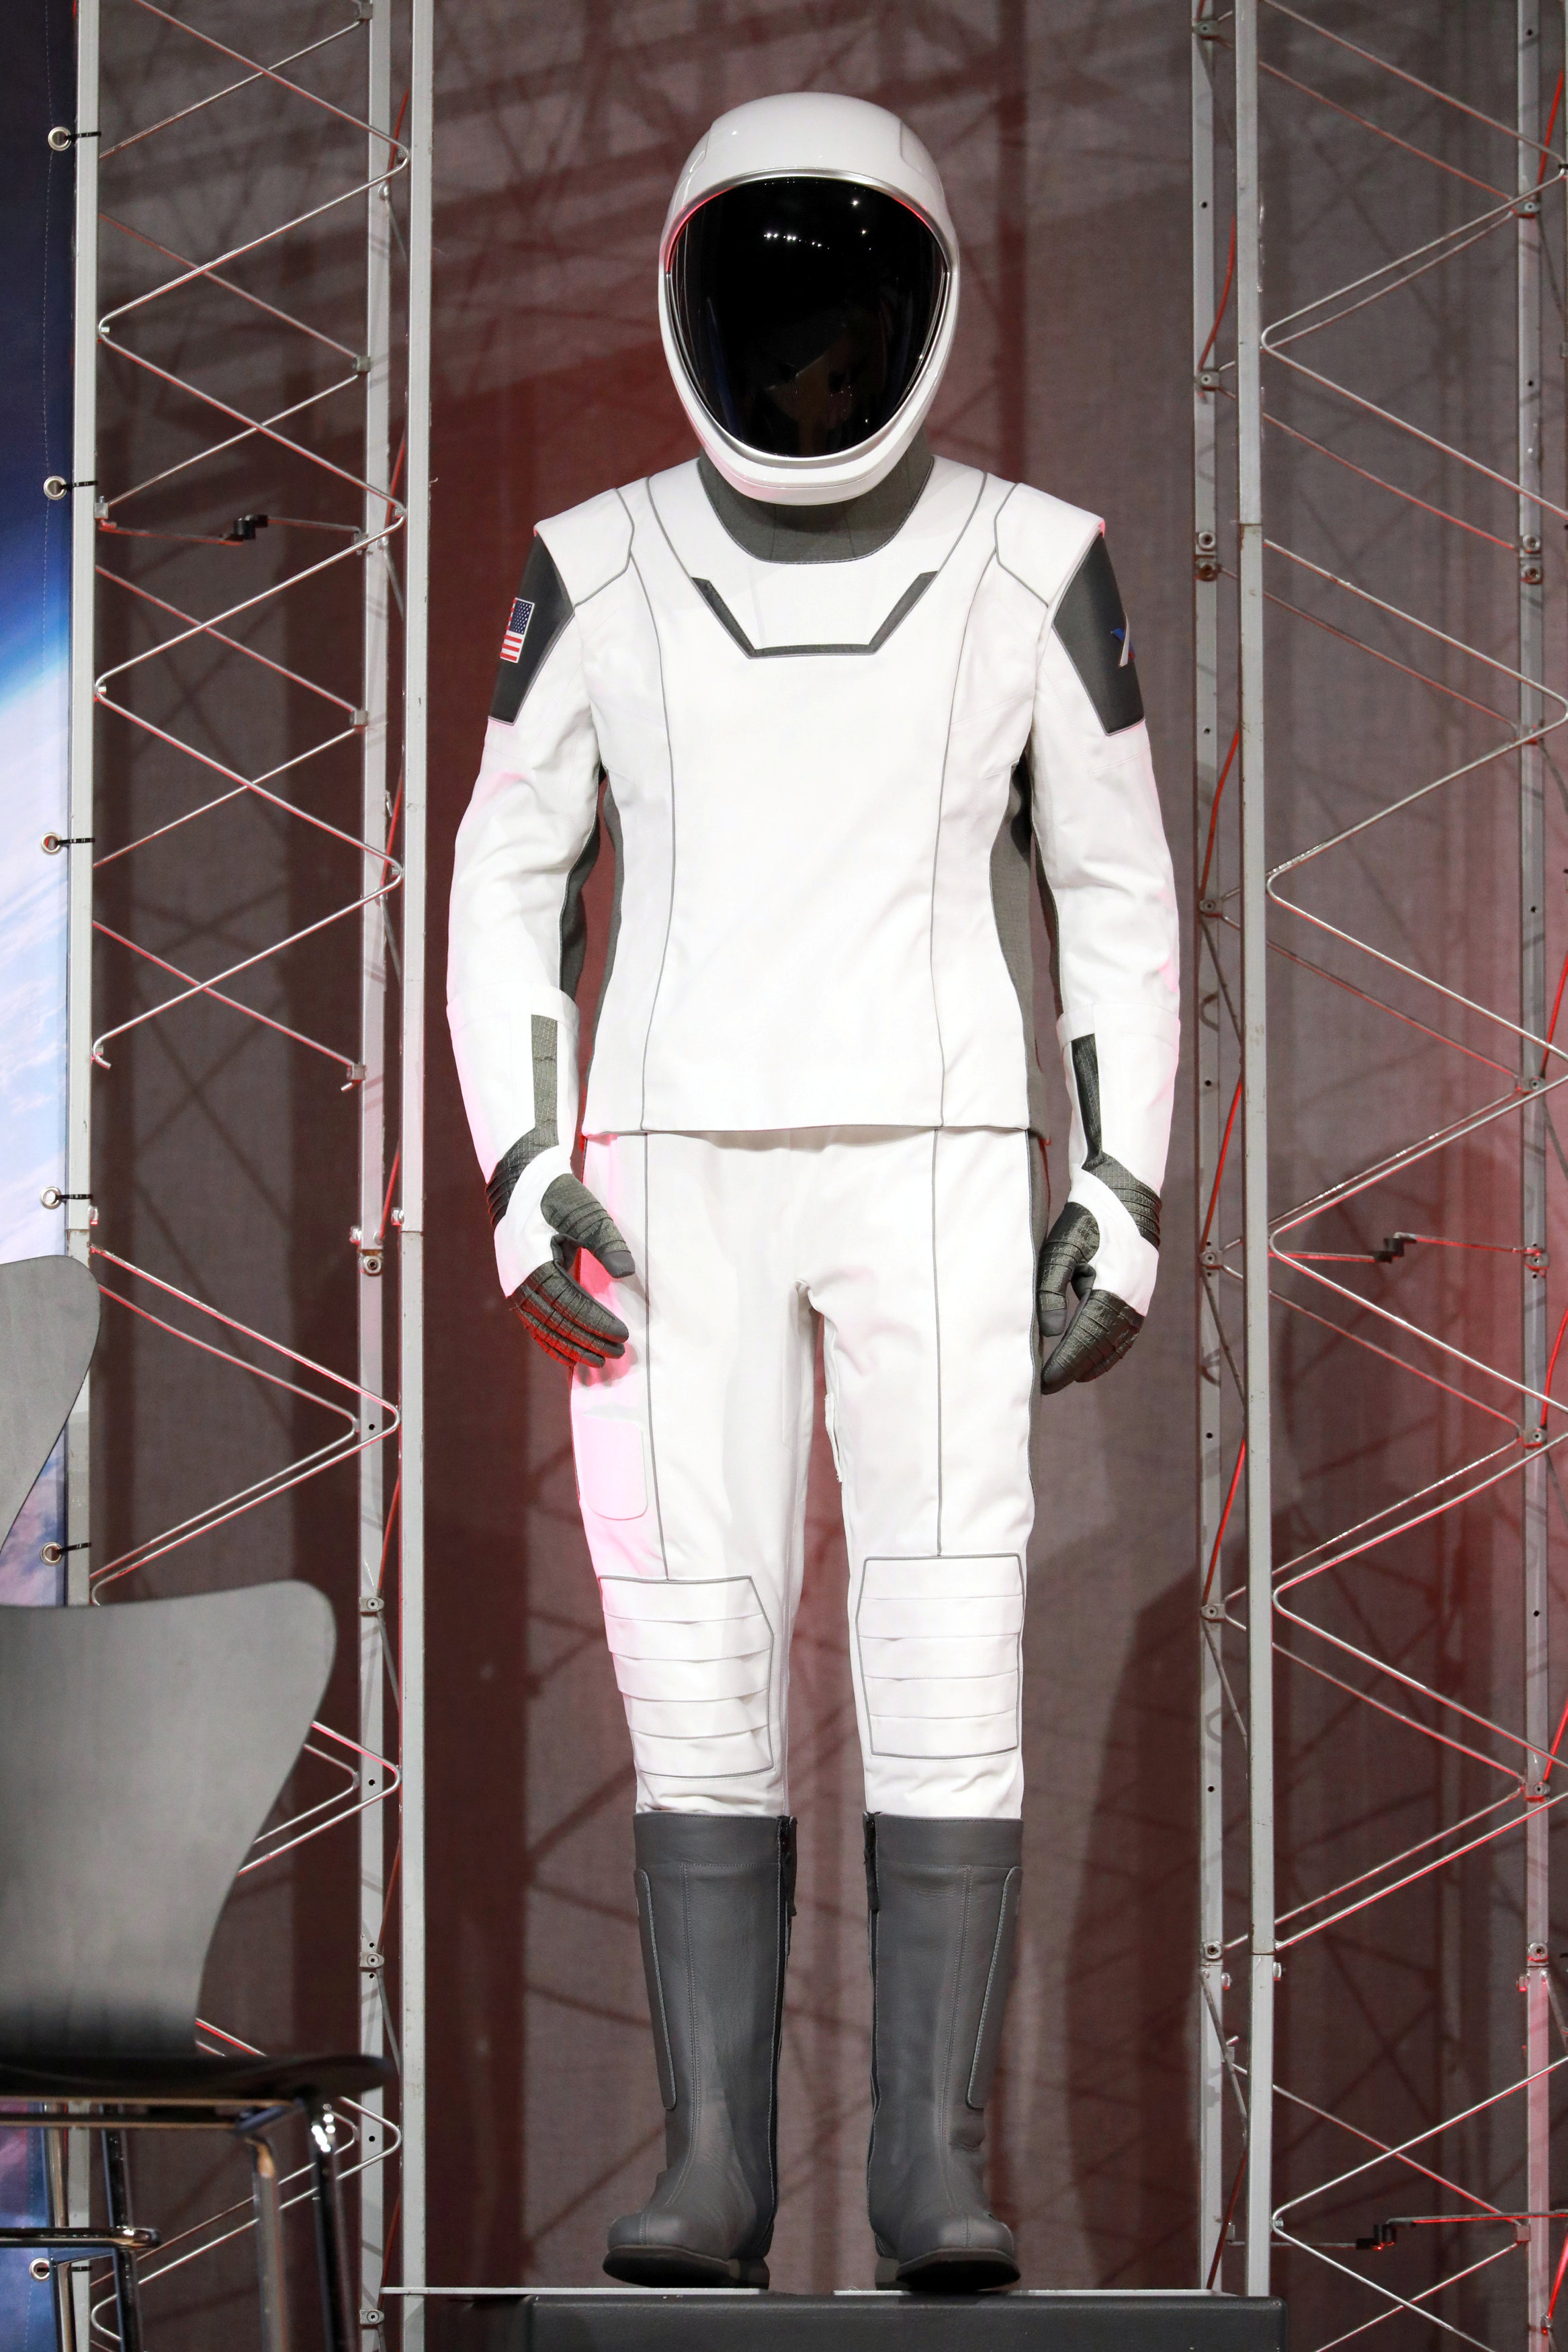 New SpaceX spacesuit displayed as NASA announces crew assignments for Boeing CST-100 Starliner and SpaceX Crew Dragon in Houston